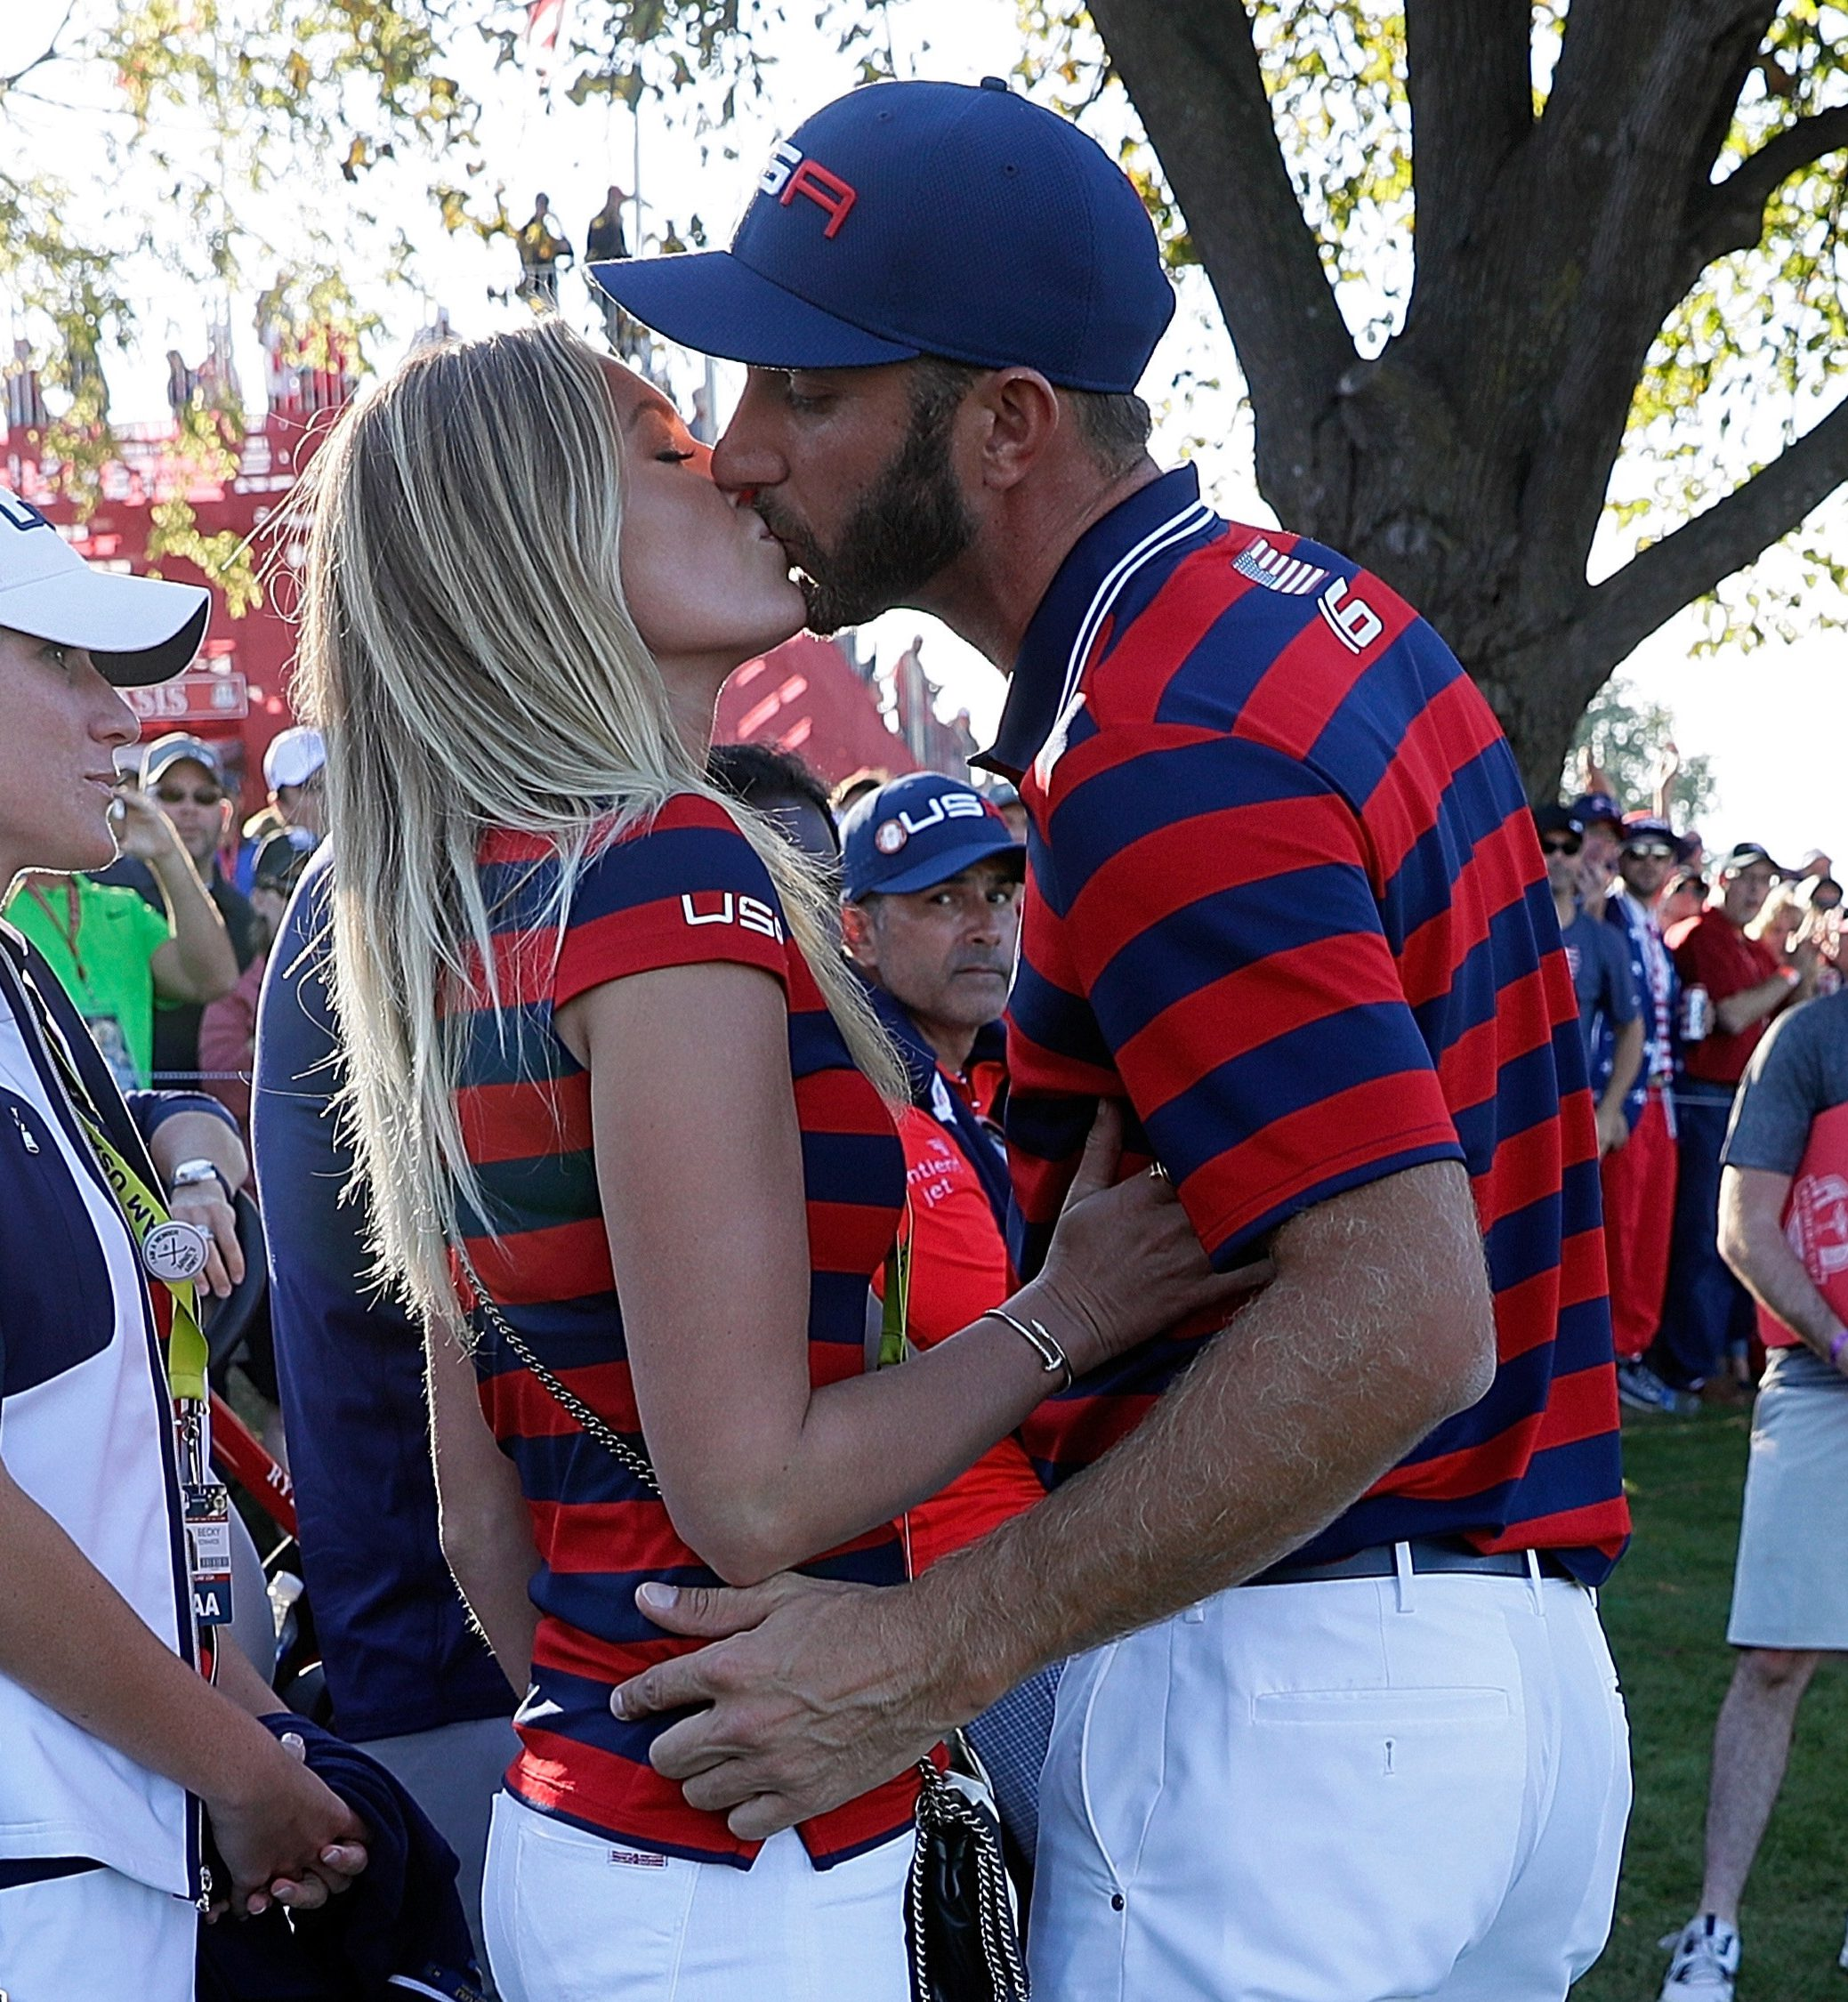 Paulina Gretzky kisses fiance Dustin Johnson for good luck during the Ryder Cup last year